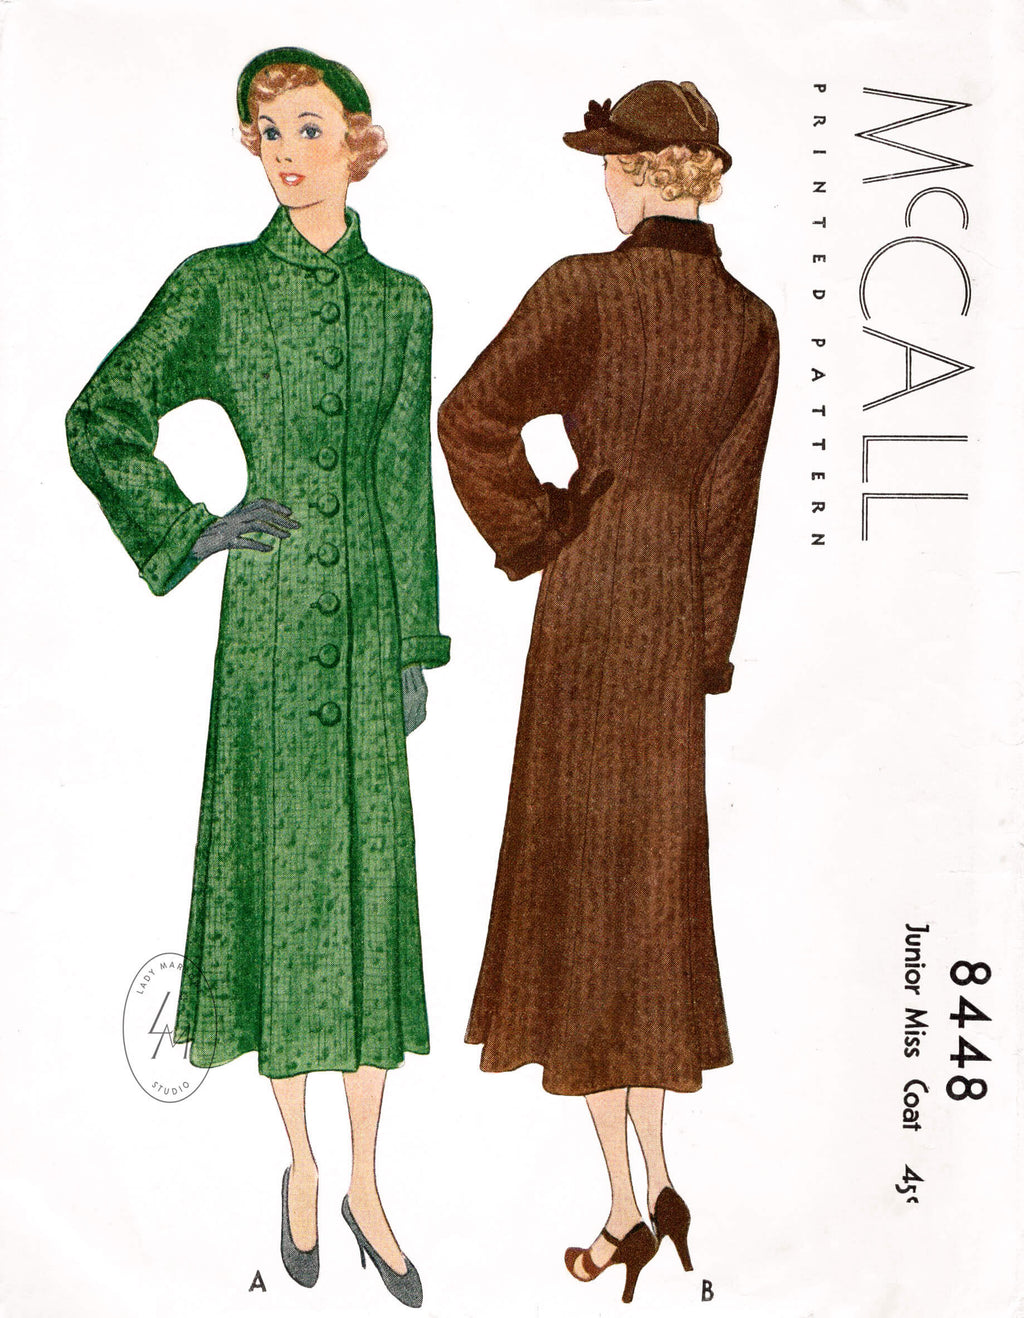 1930s McCall 8448 princess seam coat 1935 vintage sewing pattern reproduction